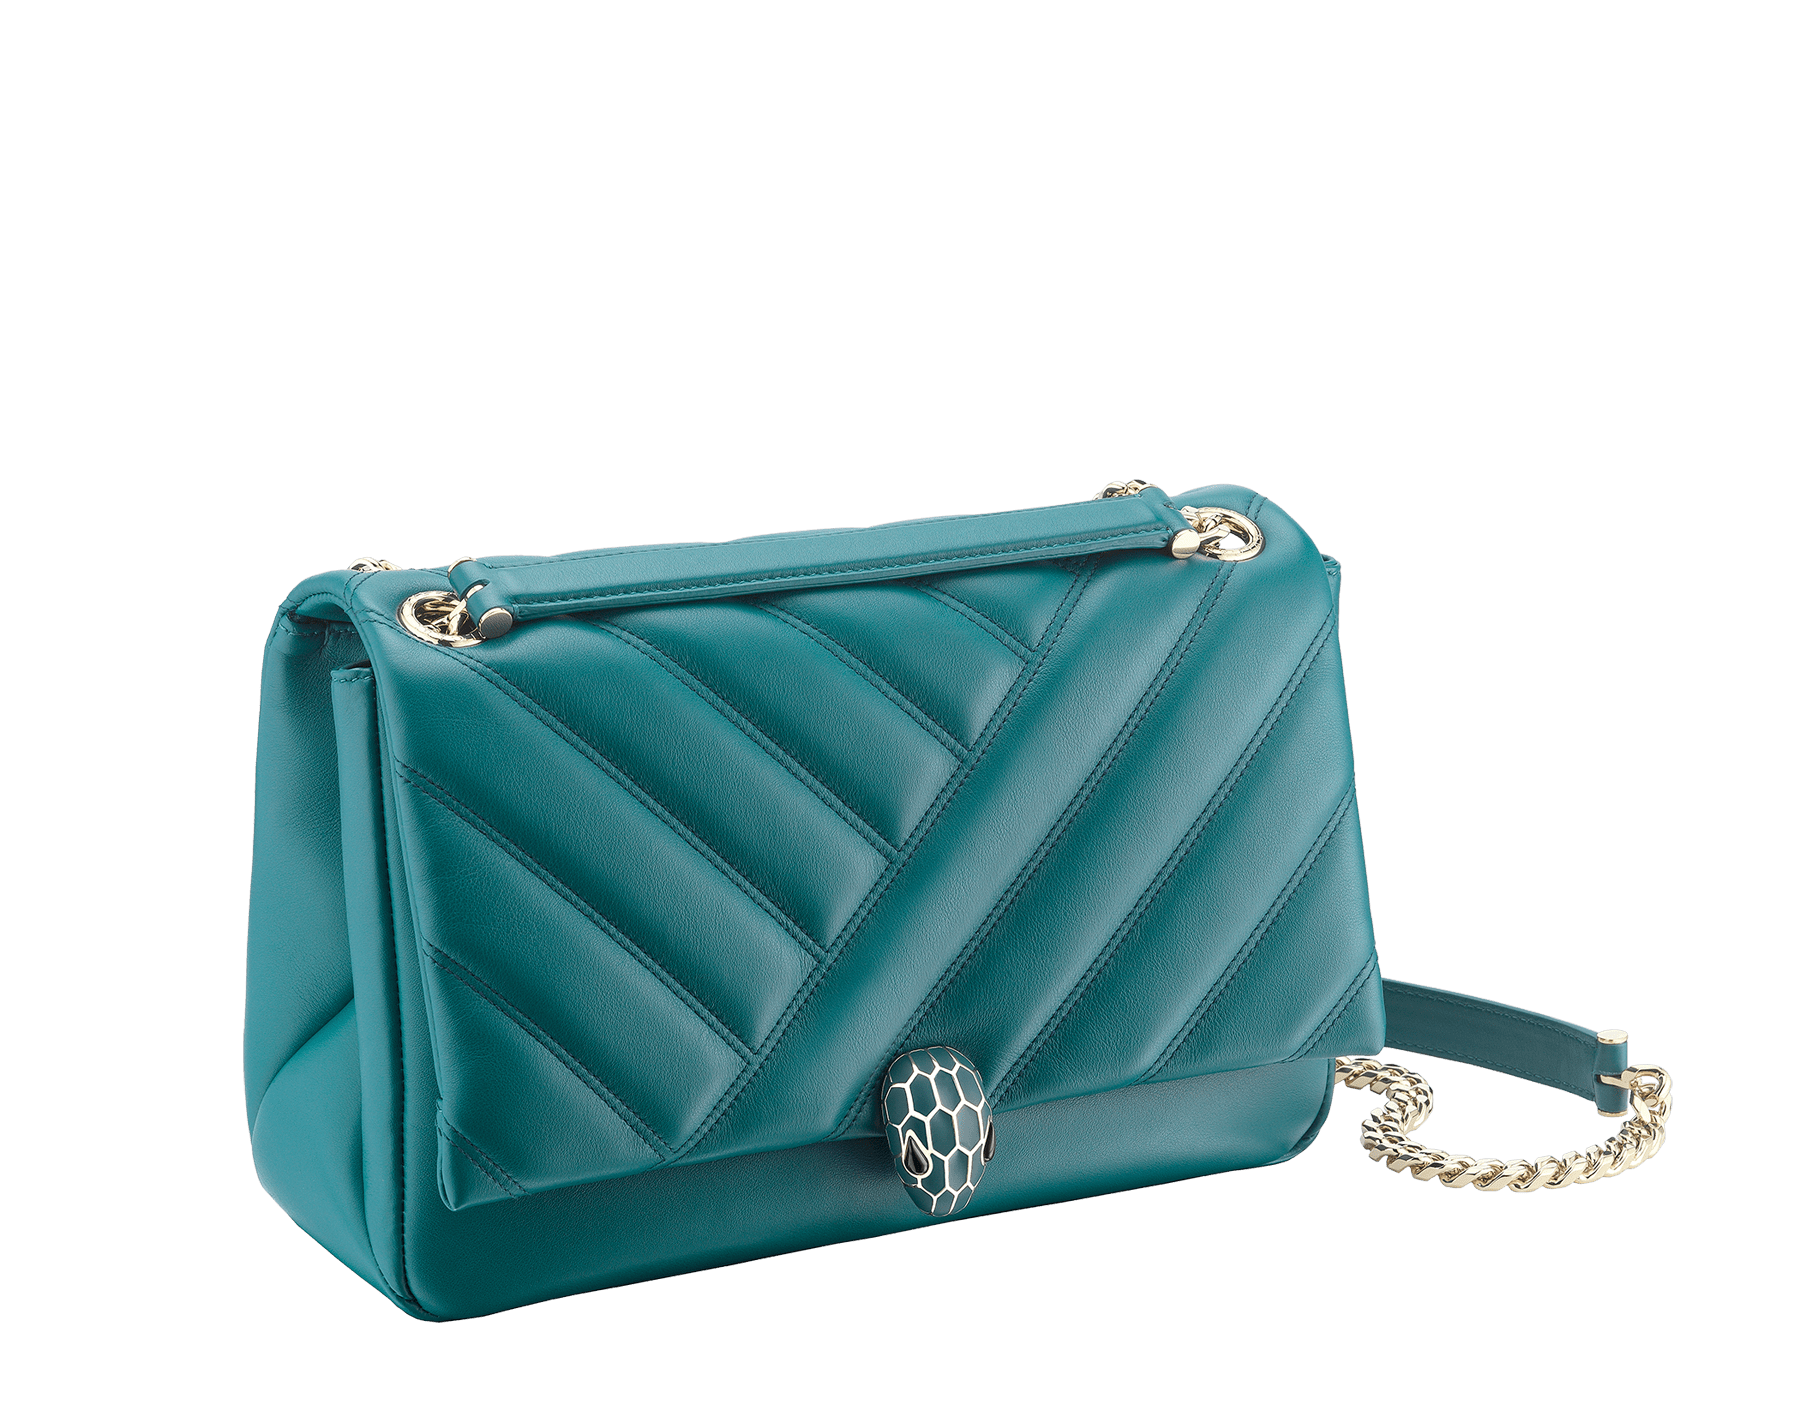 Serpenti Cabochon shoulder bag in soft matelassè deep jade nappa leather, with a graphic motif, and deep jade calf leather. Brass light gold plated tempting snake head closure in matte deep jade and shiny deep jade enamel, with black onyx eyes. 287984 image 2